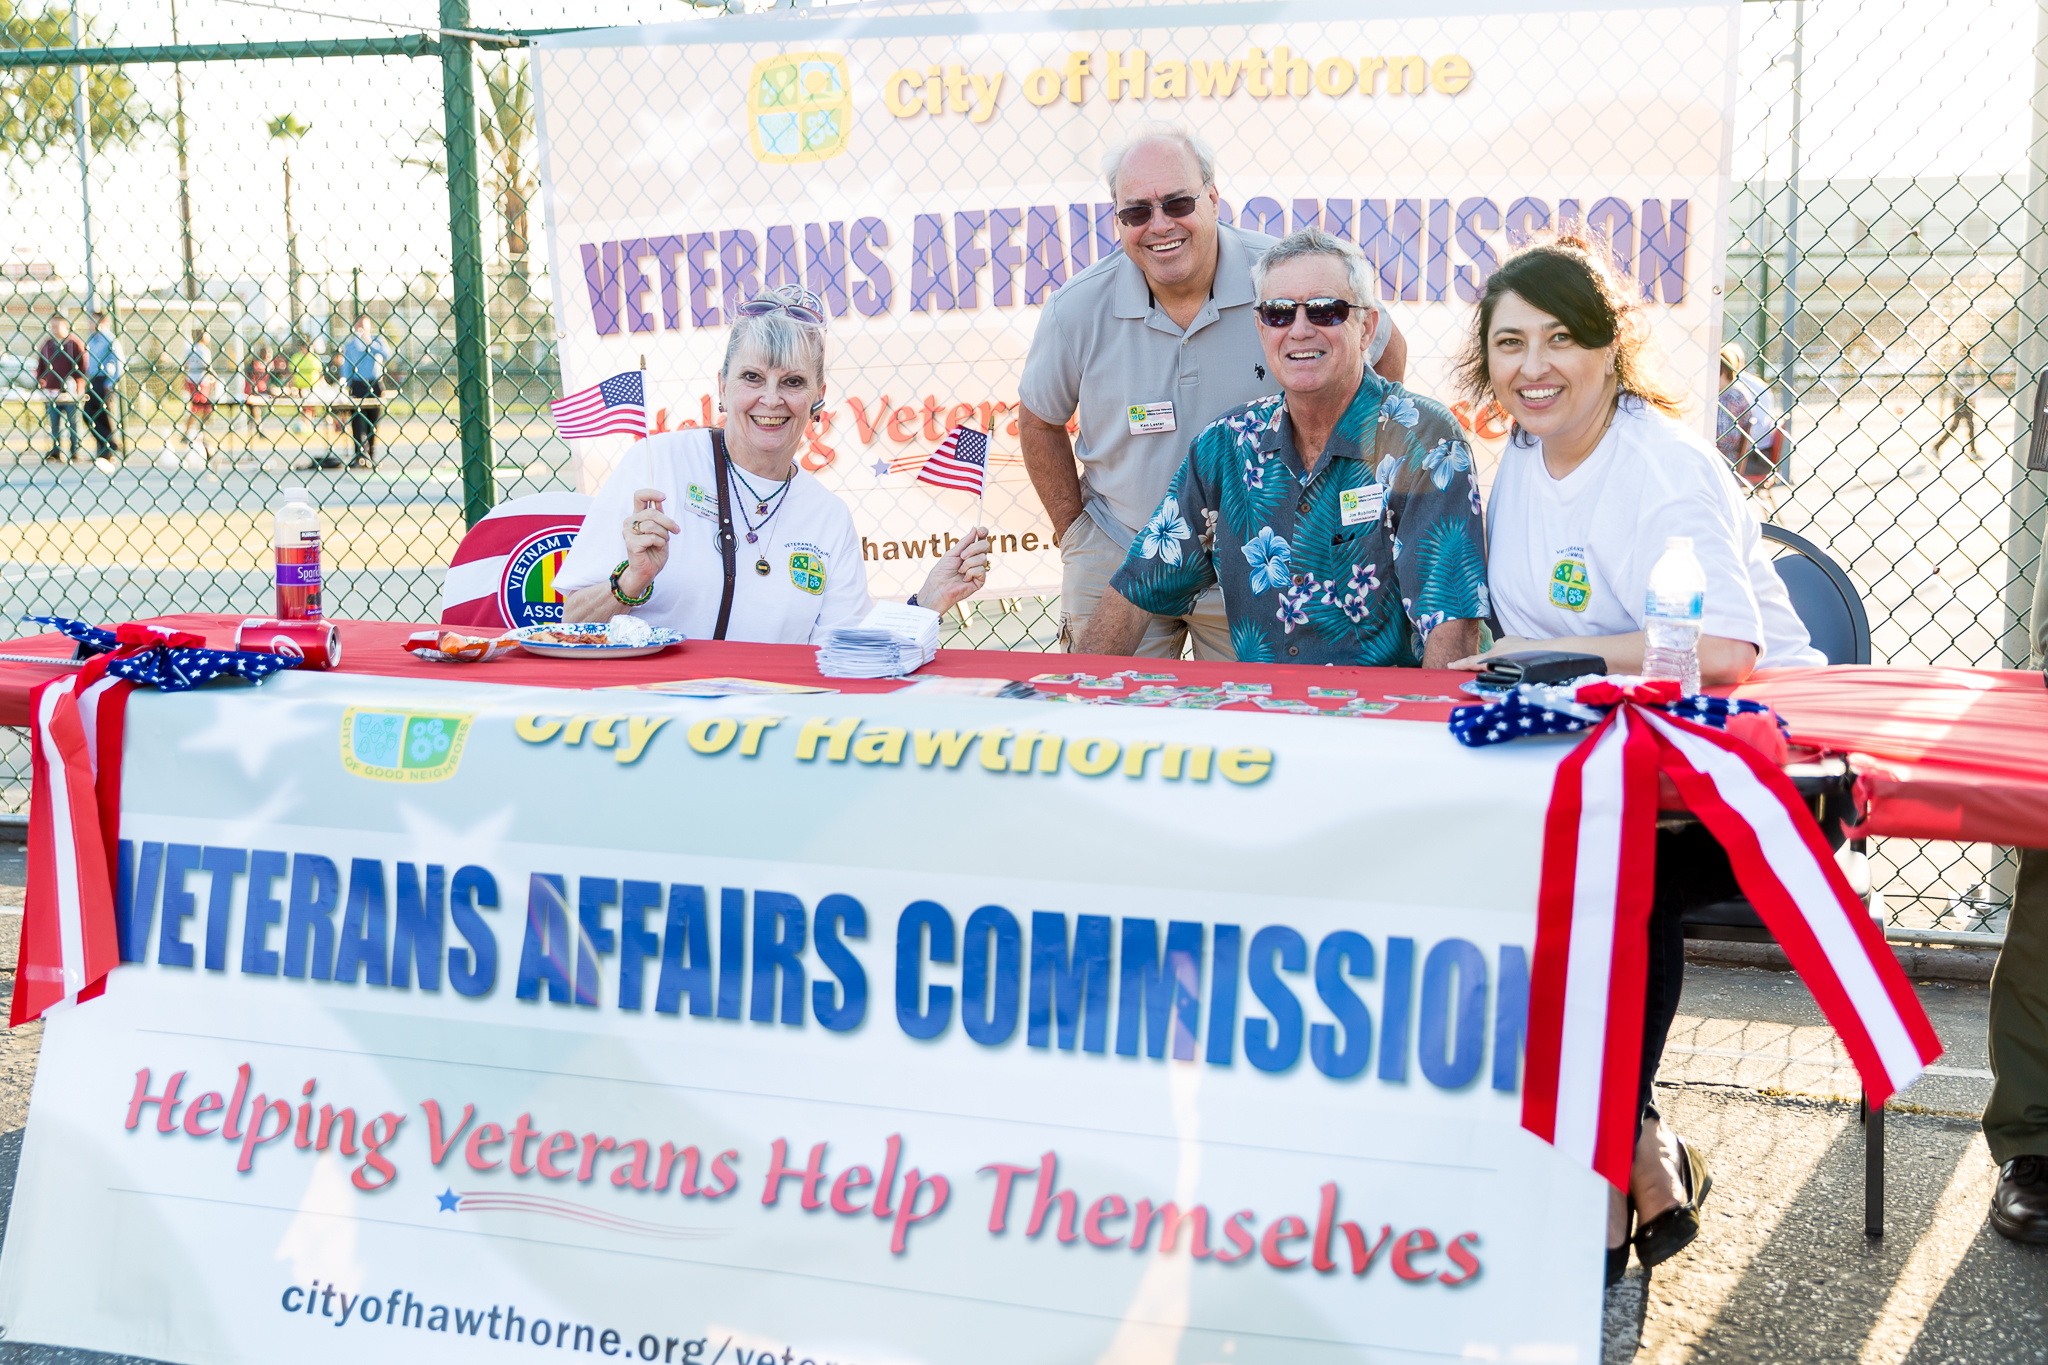 Veterans Affairs Commission booth